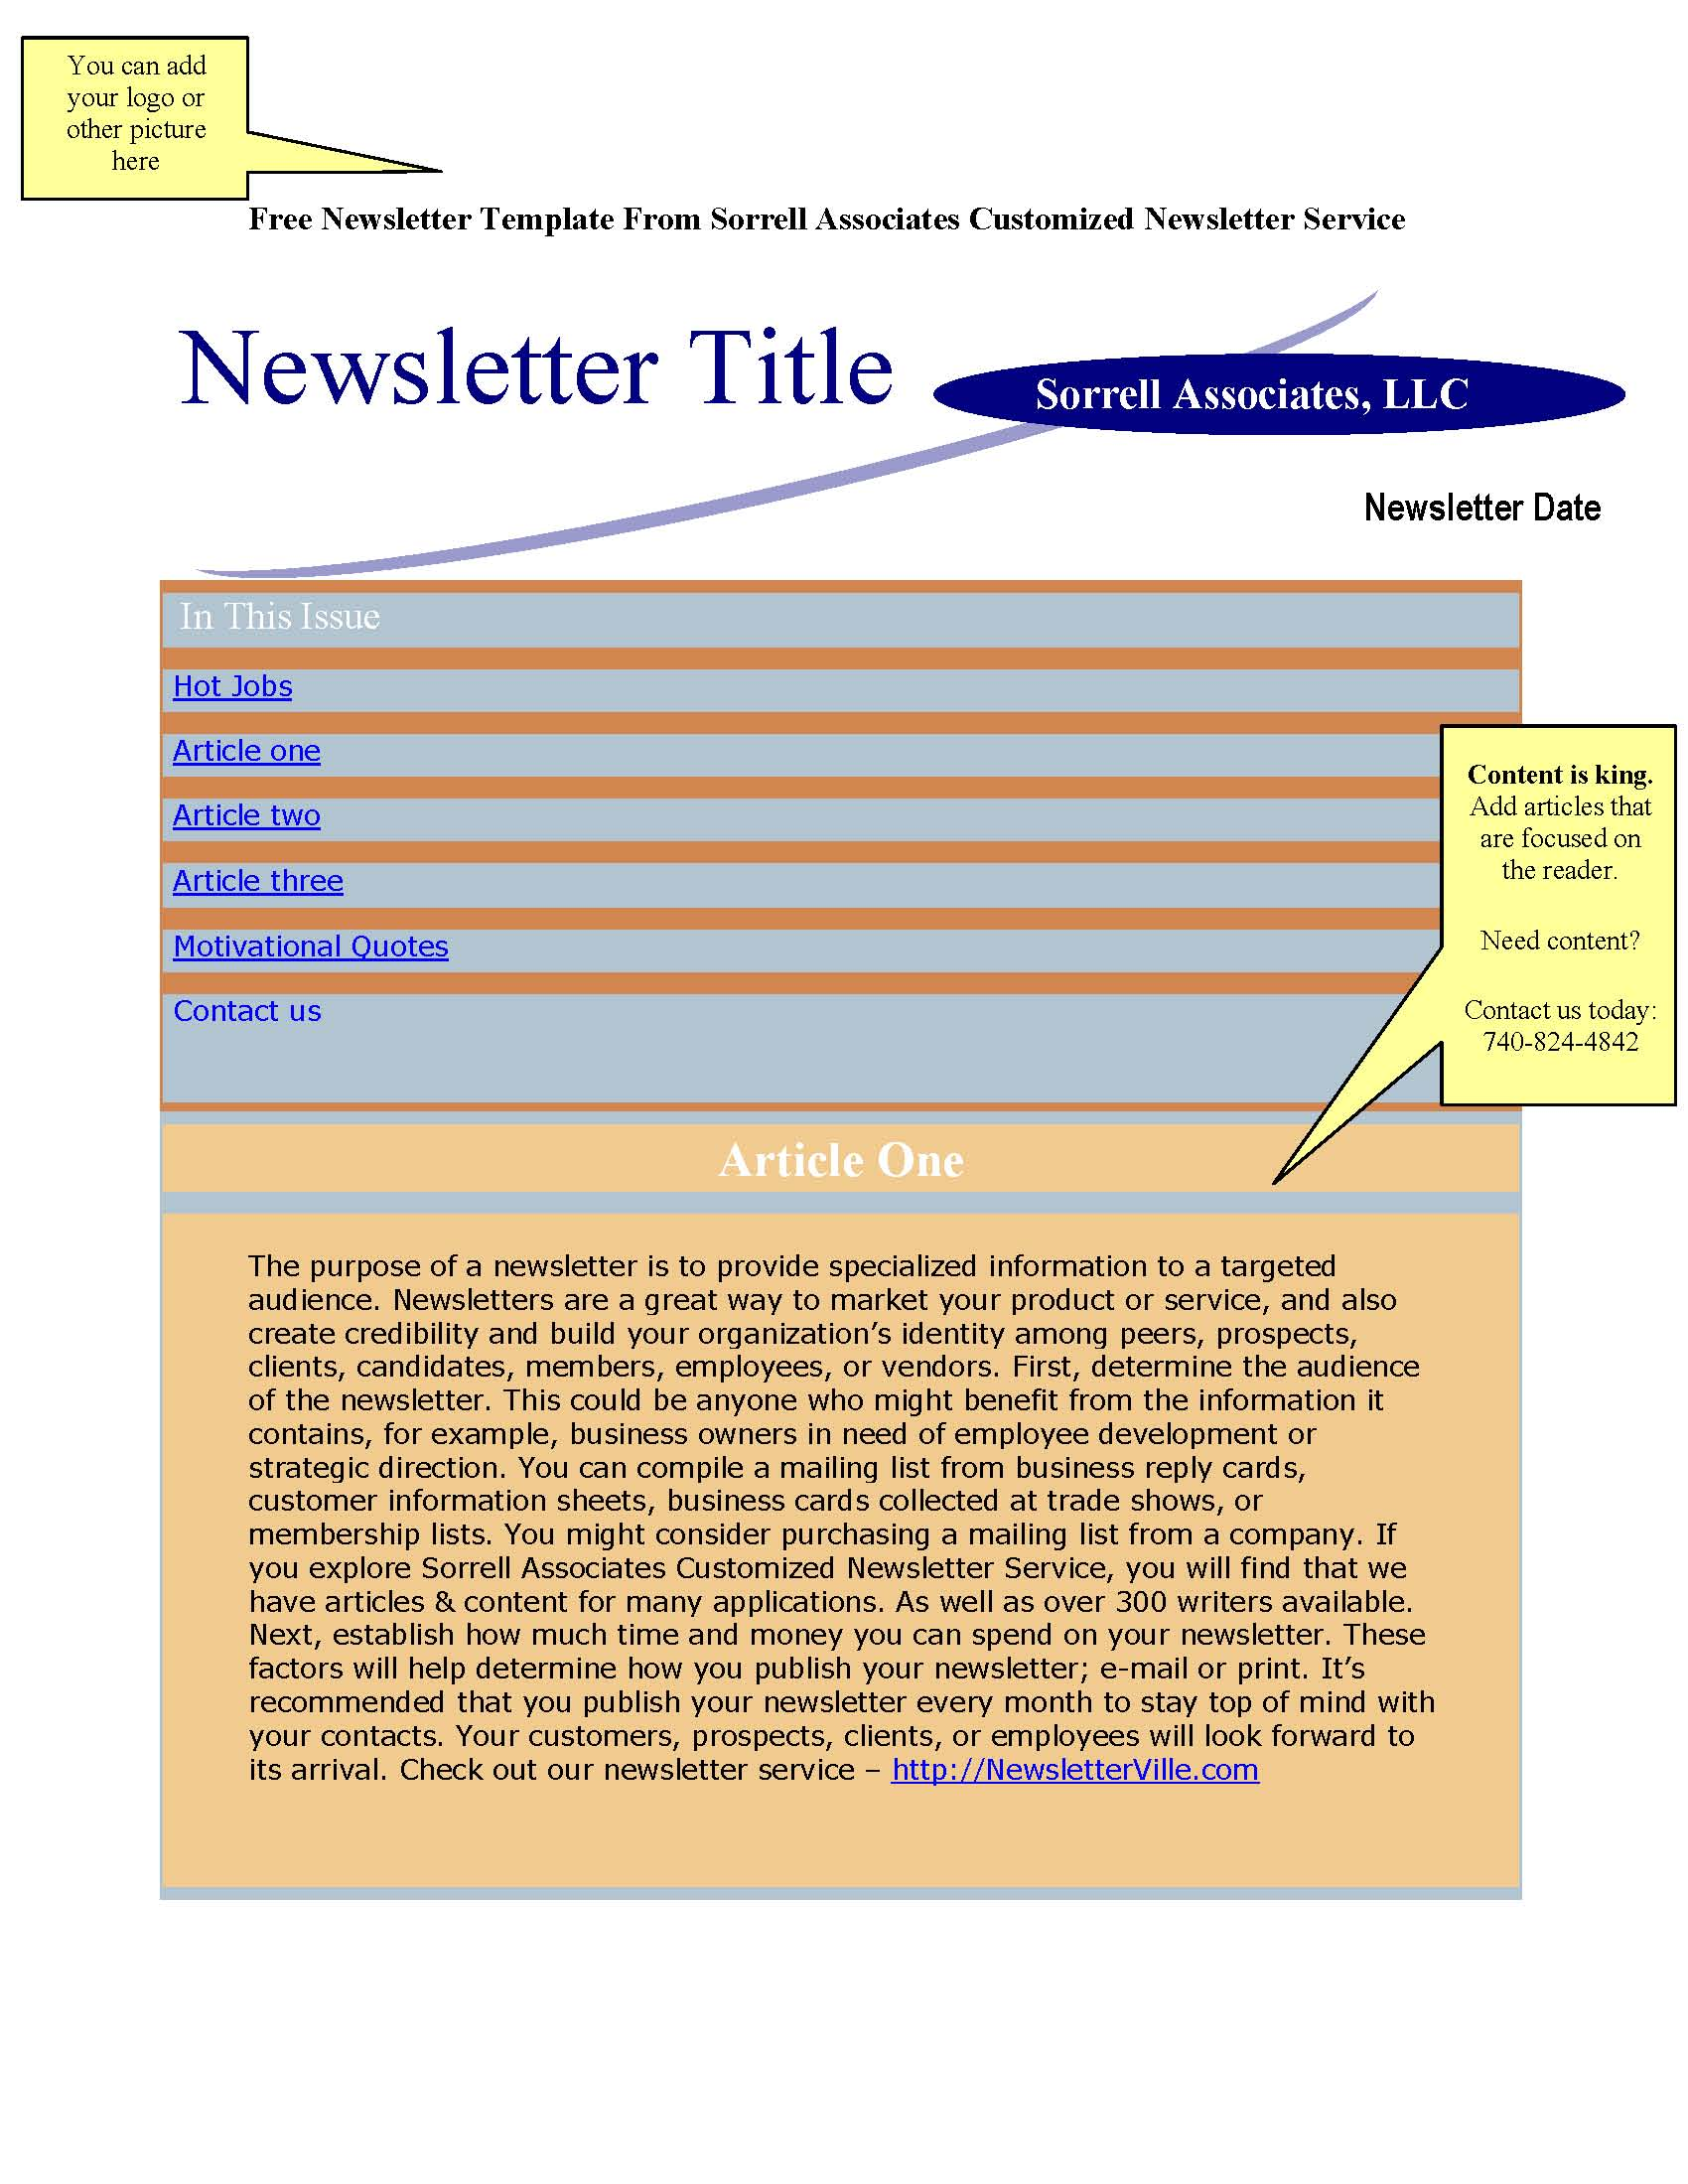 Customized Newsletter Service  Example Of Newsletter Templates